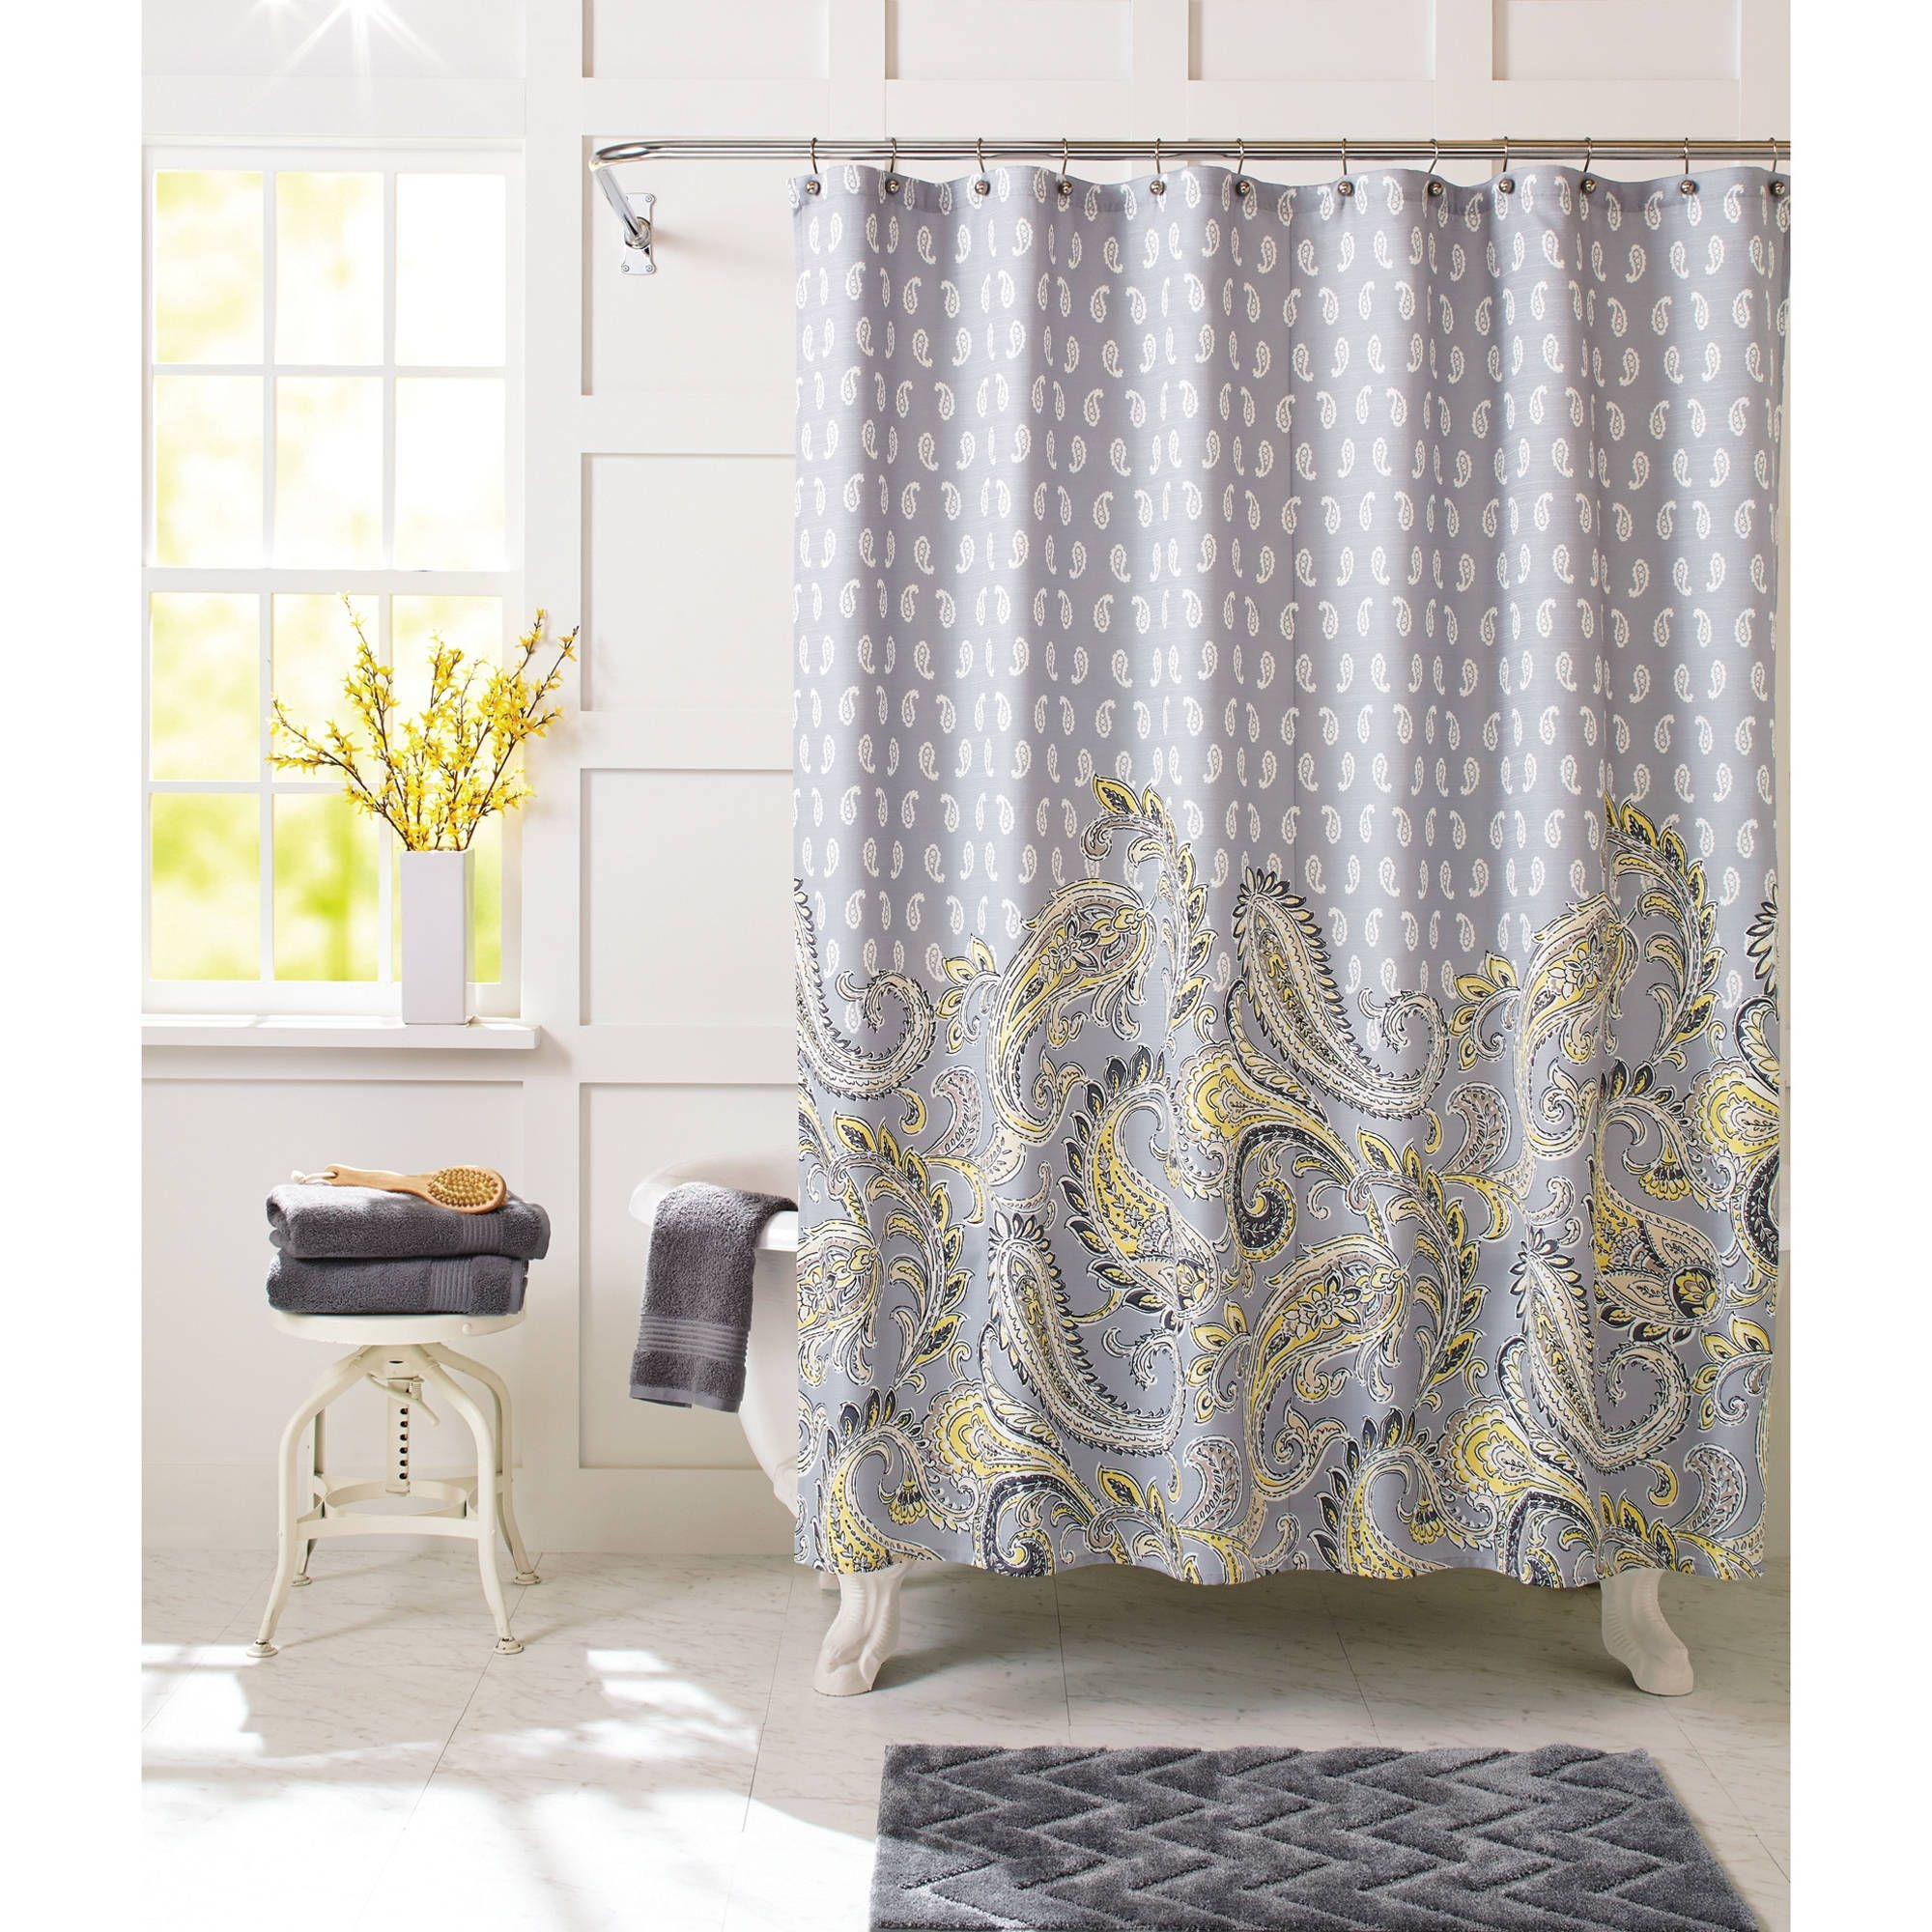 Curtain Walmart Shower Curtain For Cute Your Bathroom Decor Ideas — Whereishemsworth